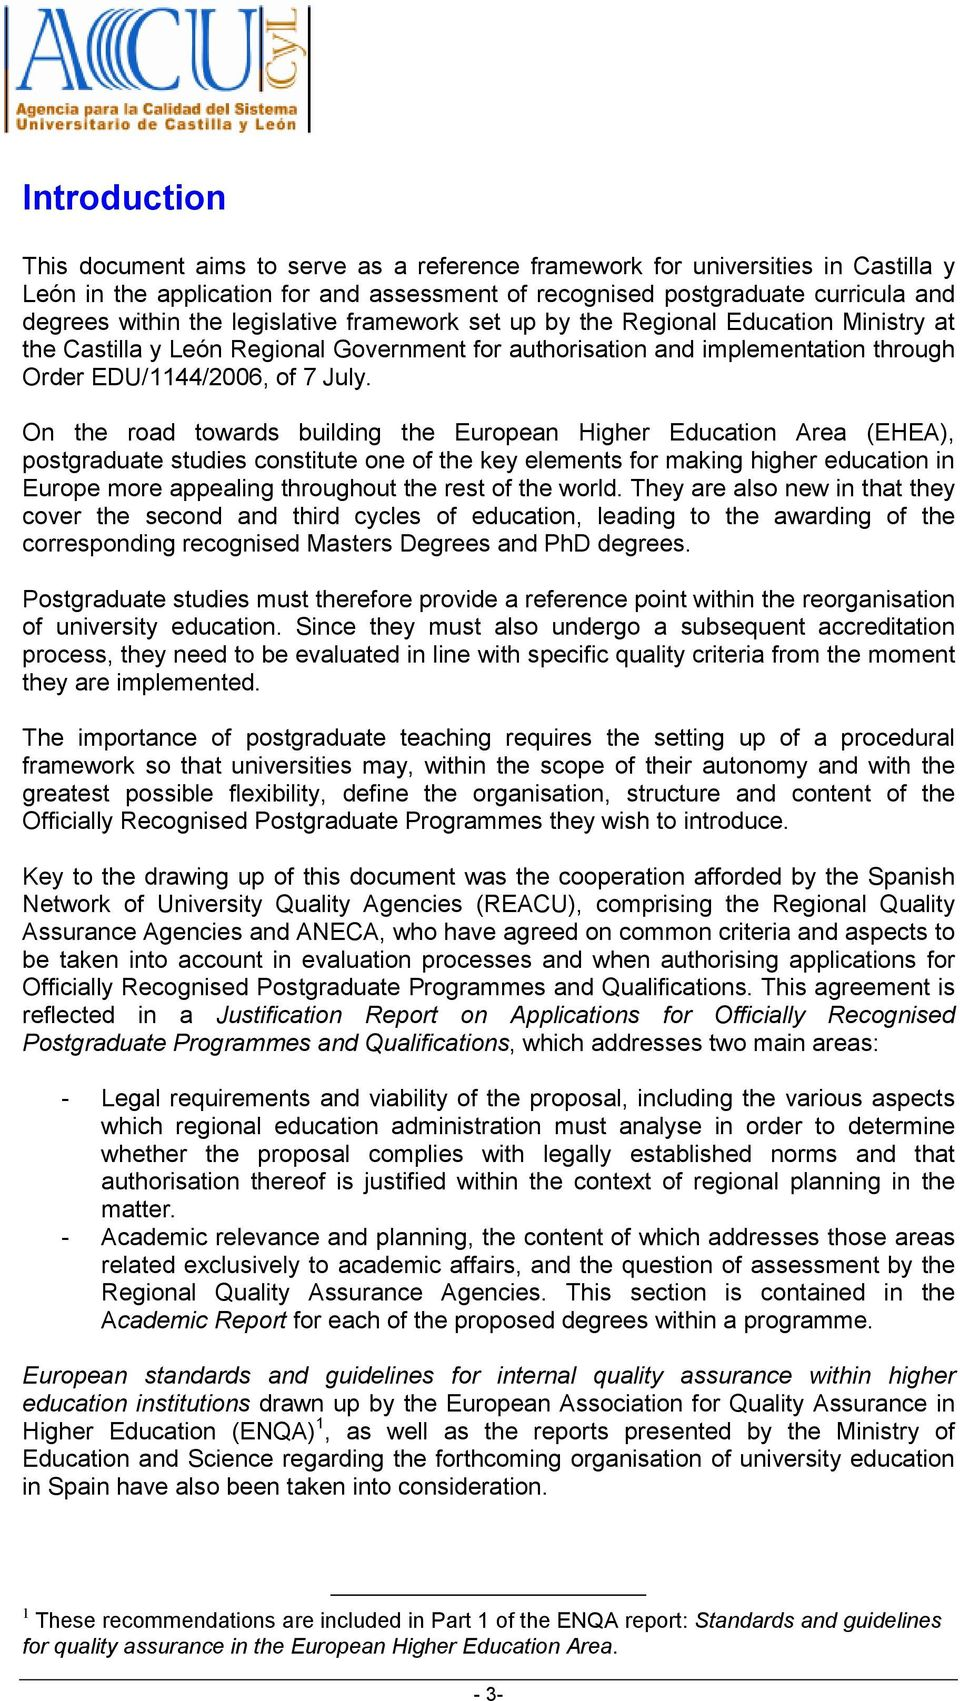 On the road towards building the European Higher Education Area (EHEA), postgraduate studies constitute one of the key elements for making higher education in Europe more appealing throughout the